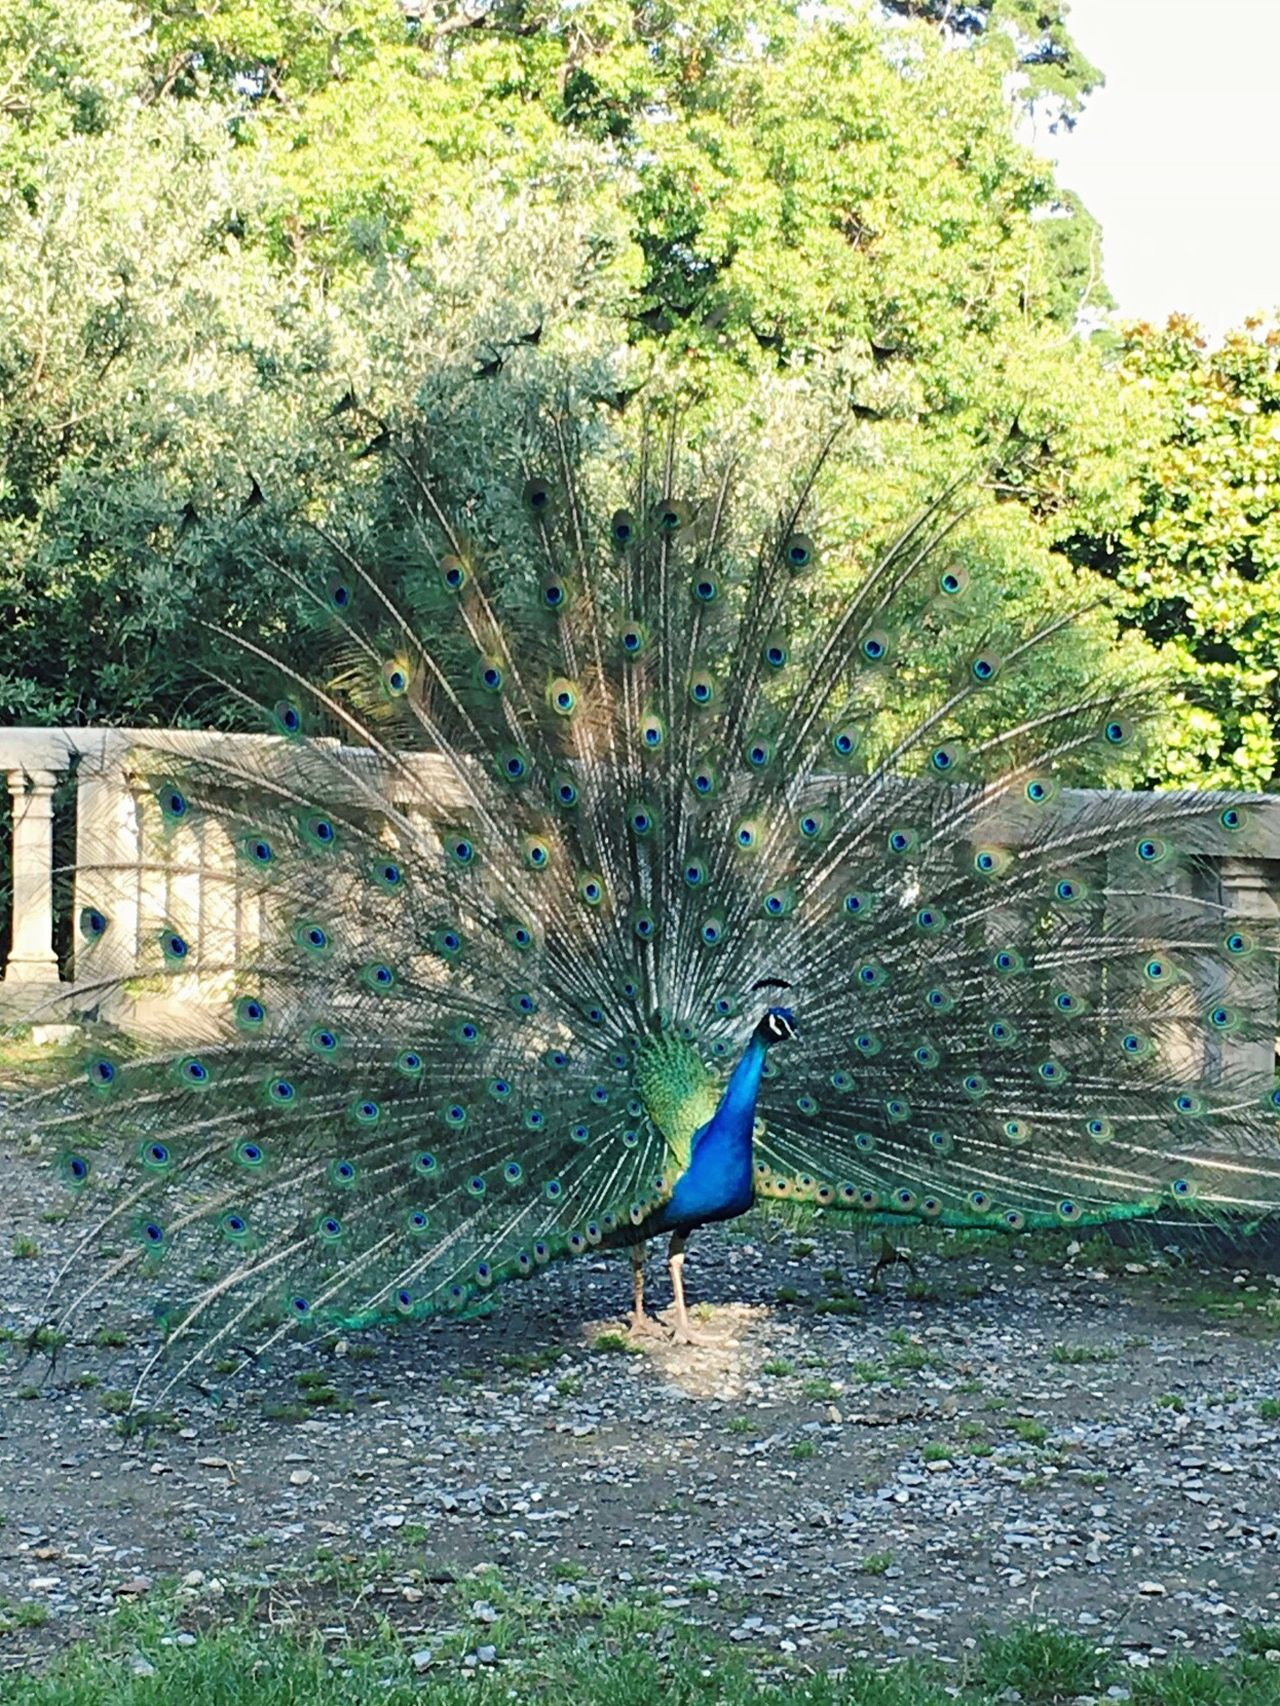 Peacock in the city Bird One Animal Nature Outdoors Animals In The Wild Day Peacock No People Animal Themes Grass Beauty In Nature Fanned Out Perfect Adapted To The City